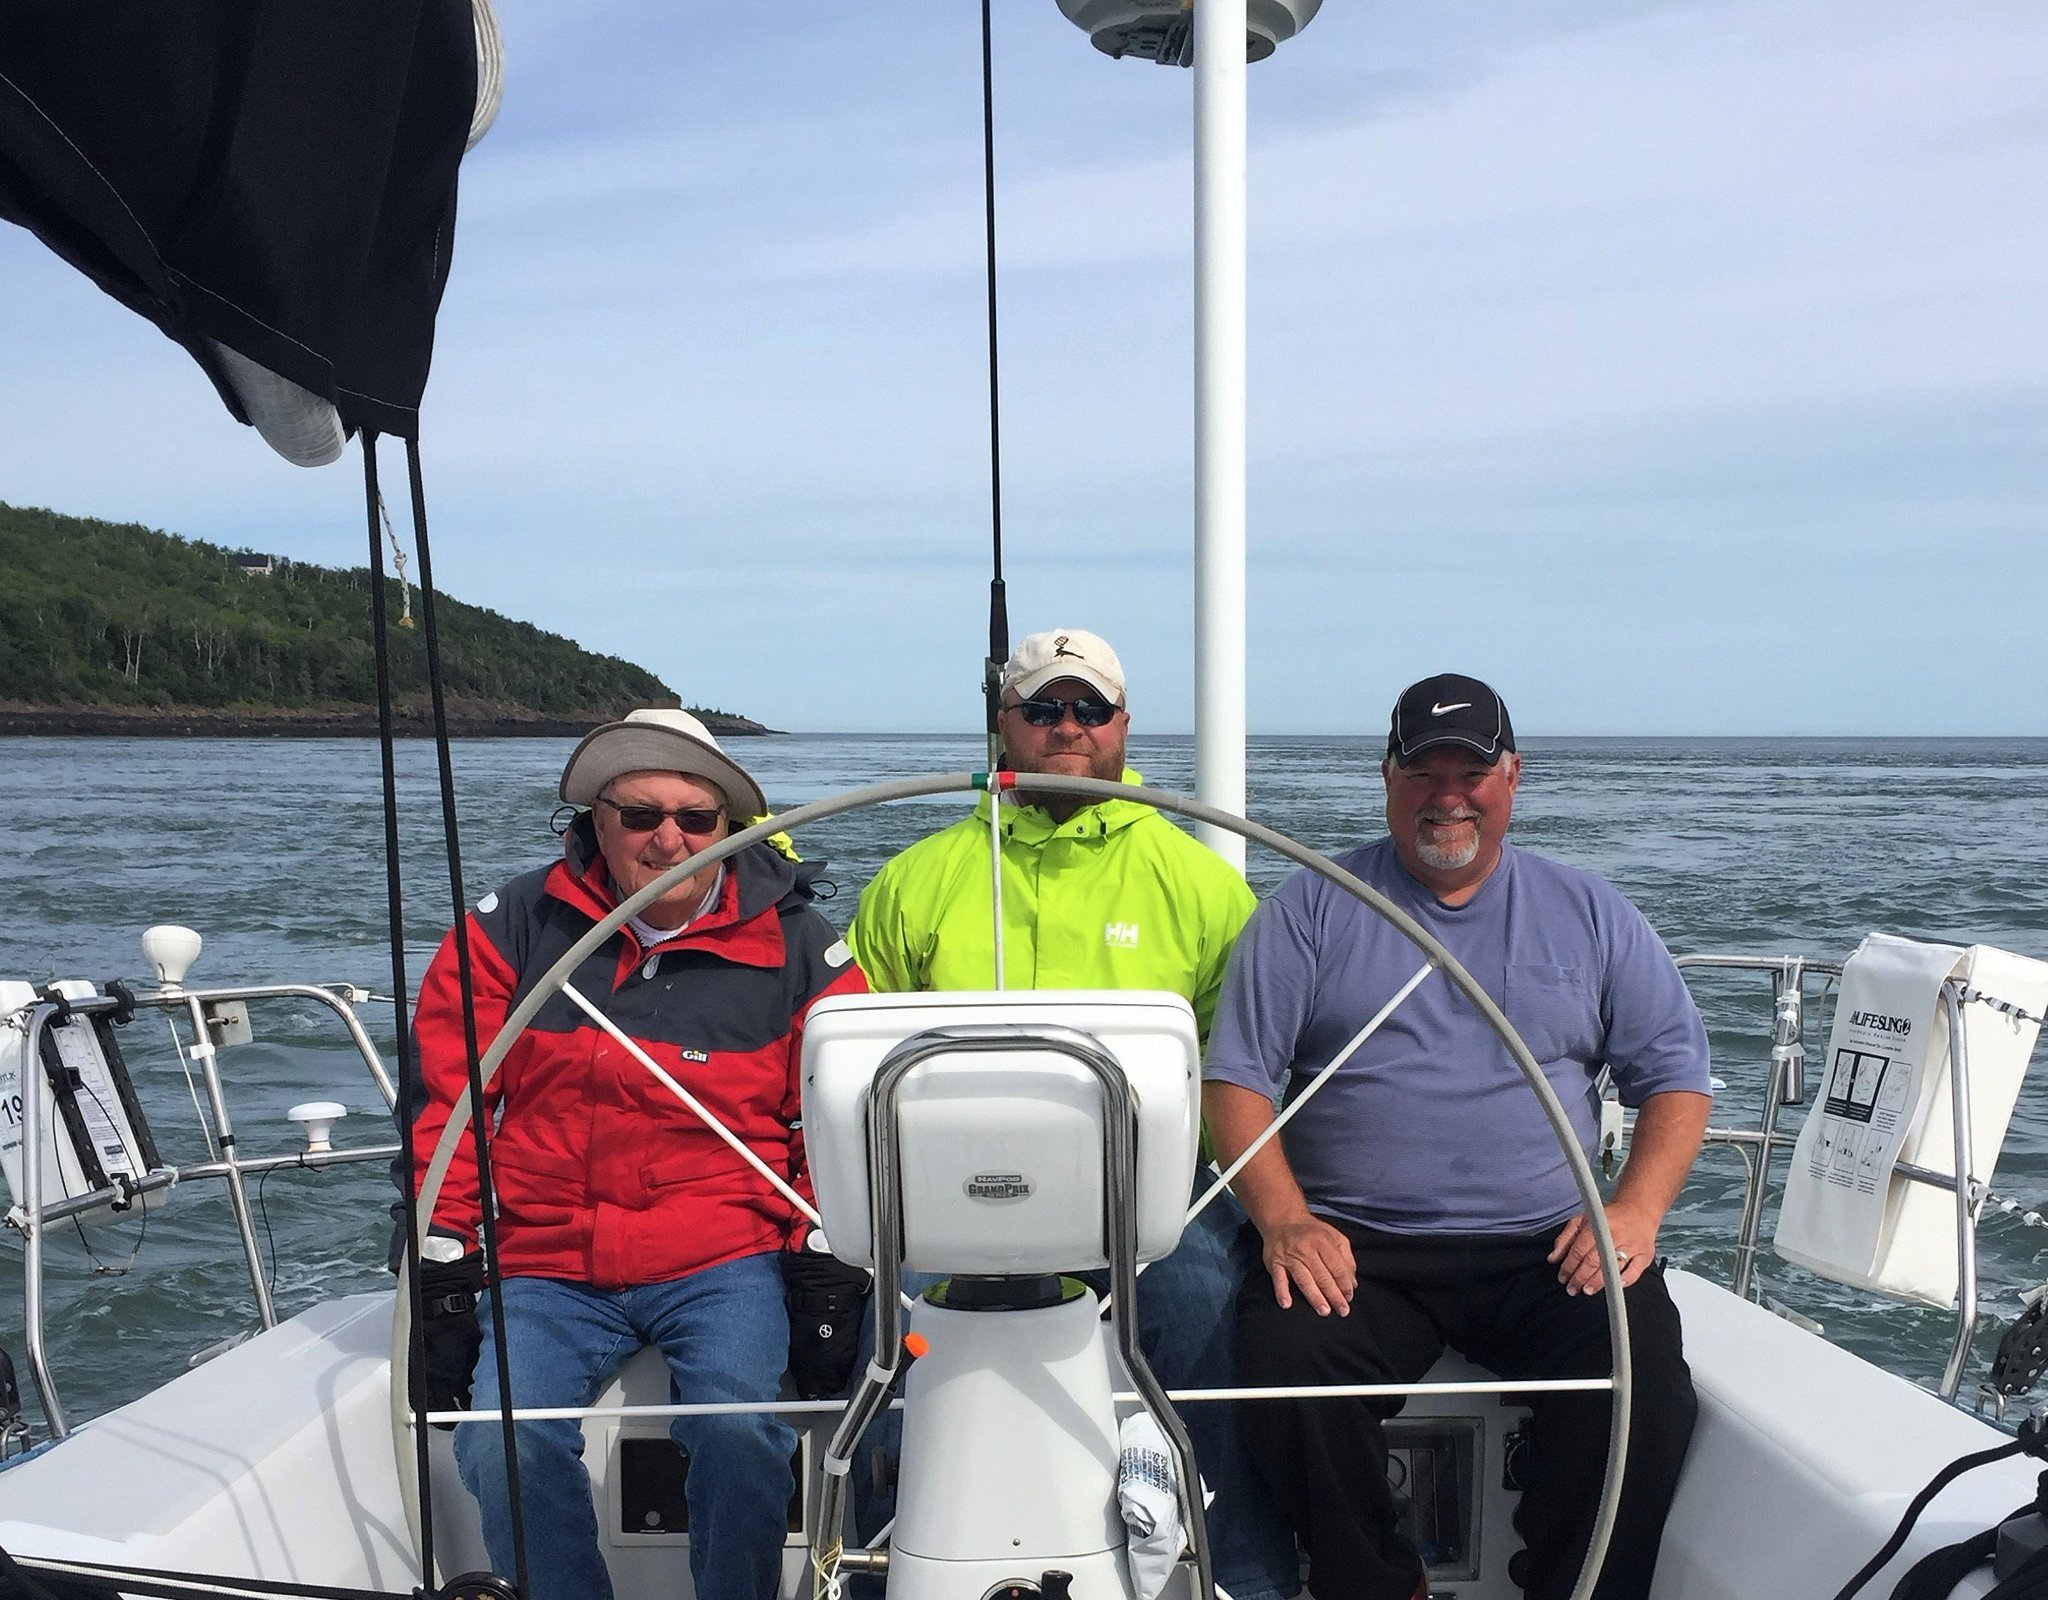 Tom (past president), Tom (president), and Keith (vice-president) on a family sailing trip